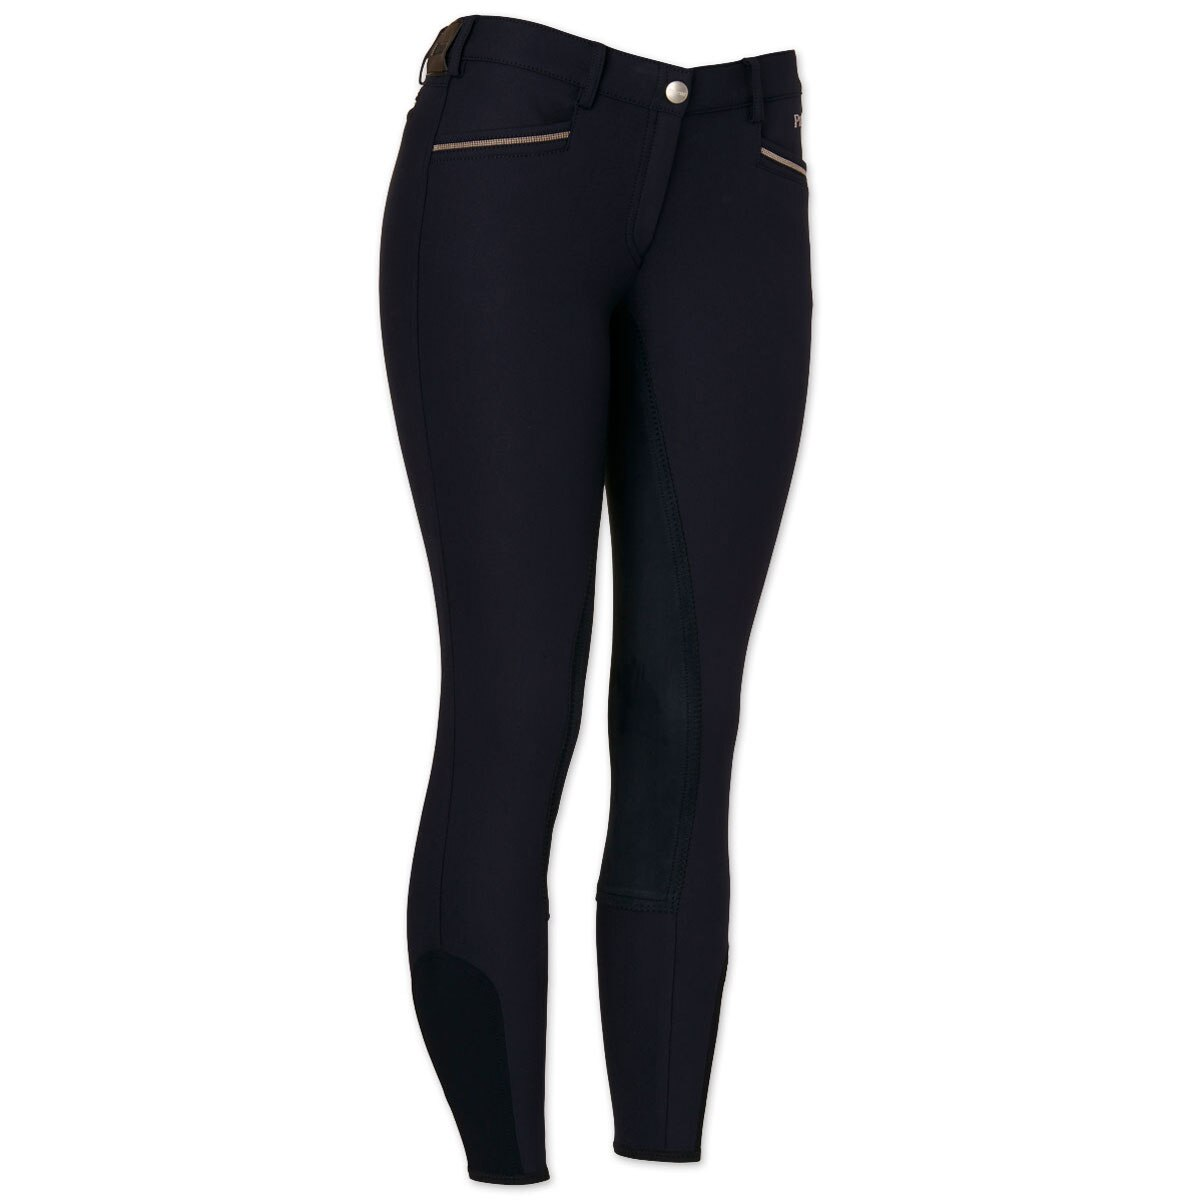 Pikeur Leslie Full Seat Breeches